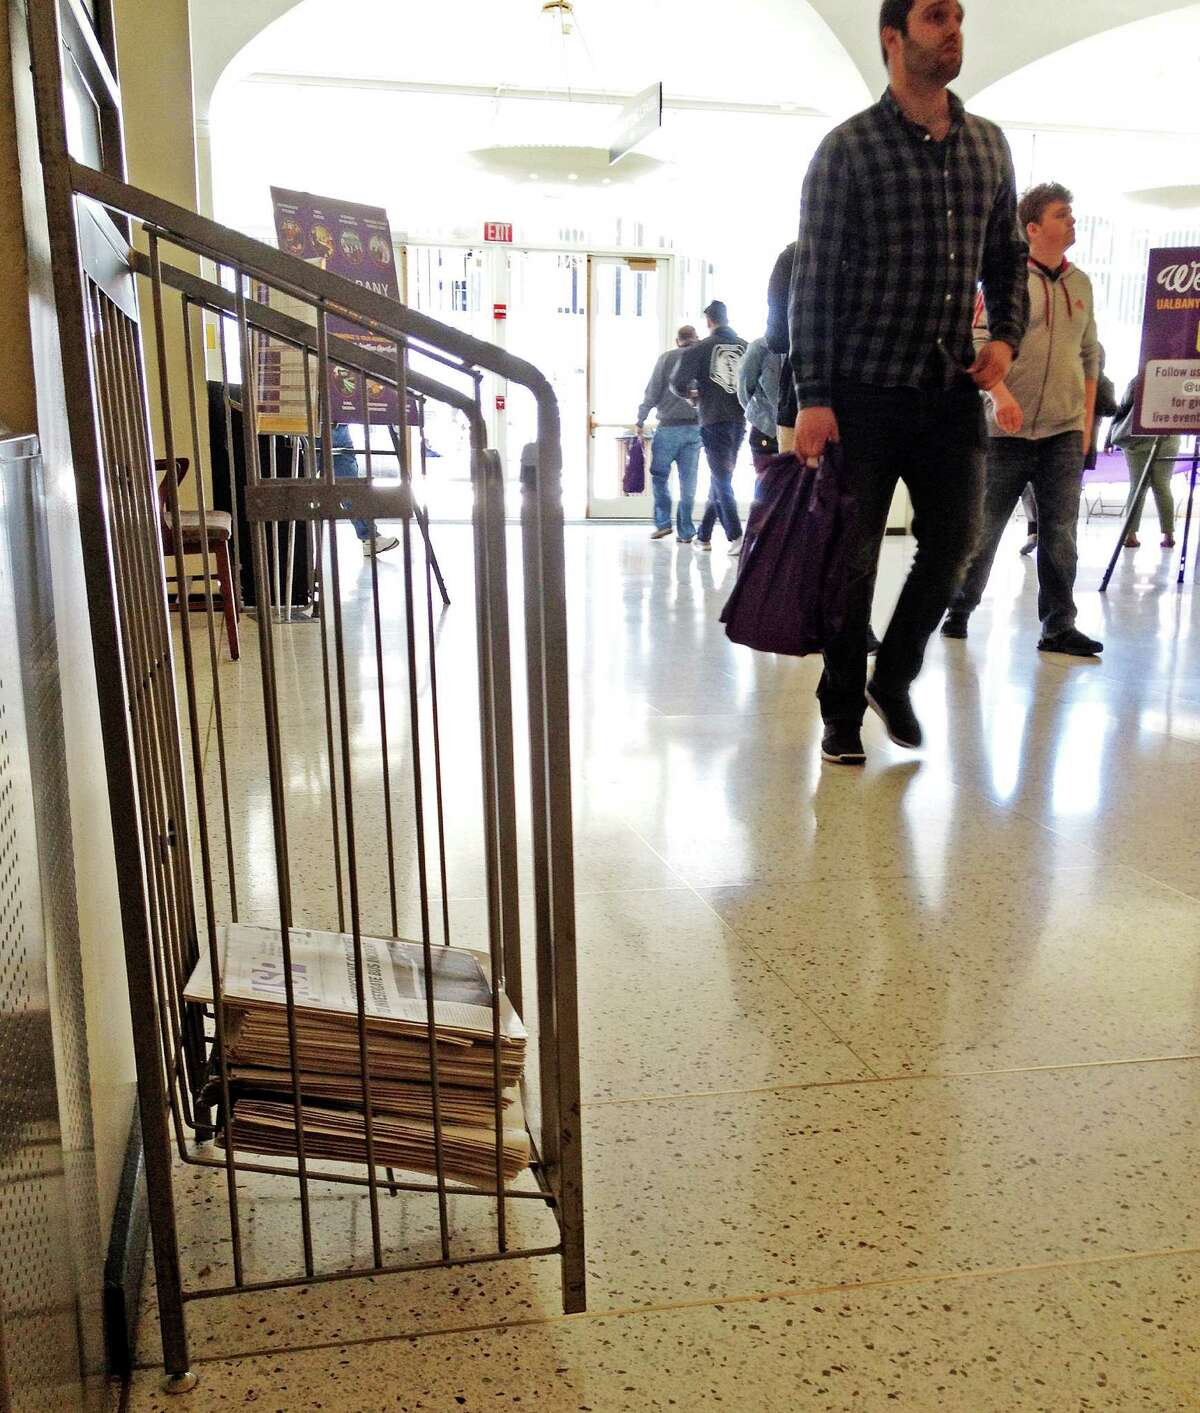 Students and families attending UAlbany's two-day Open House weekend event on Saturday, April 16, didn't see the Albany Student Press' report about a 200 percent increase in sexual assaults, published Tuesday, April 5. The newspapers had been removed from several metal racks such as this one in the Lecture Center Concourse ? where faculty had set up tables to interface with incoming students. Times Union photo.